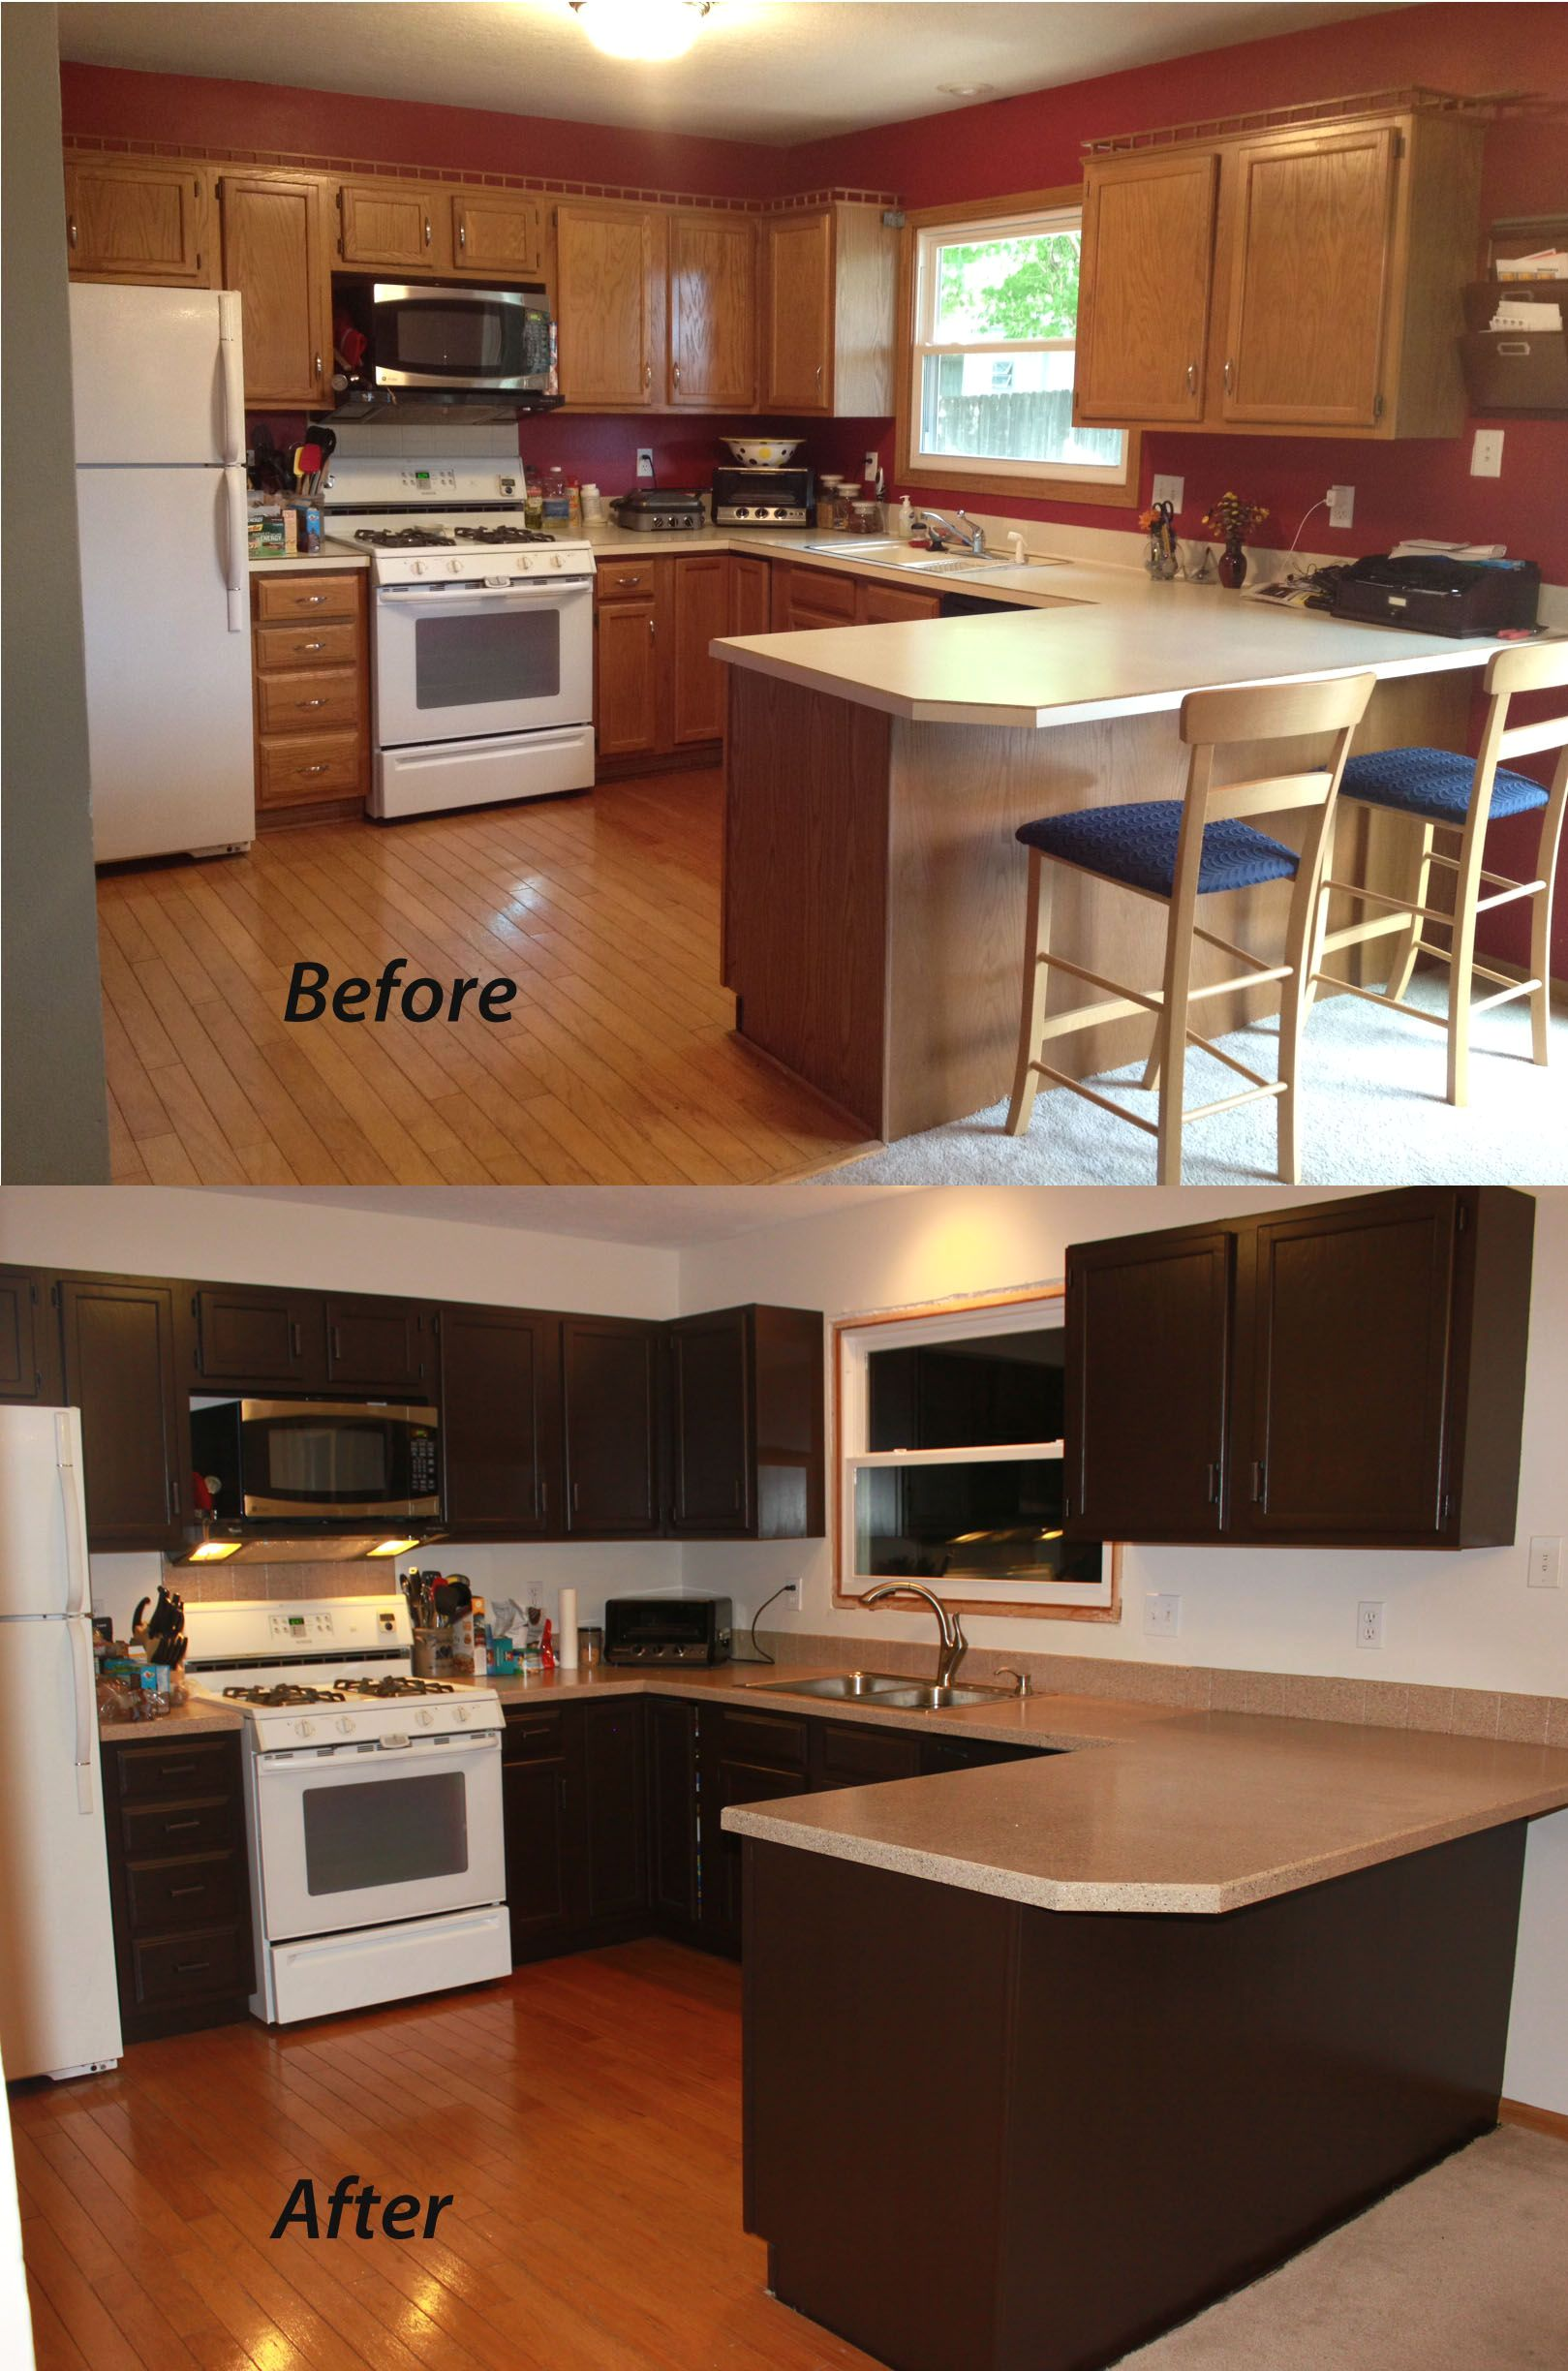 Buying Kitchen Cabinets On A Budget Small Kitchen Remodel Before And After For Stunning And